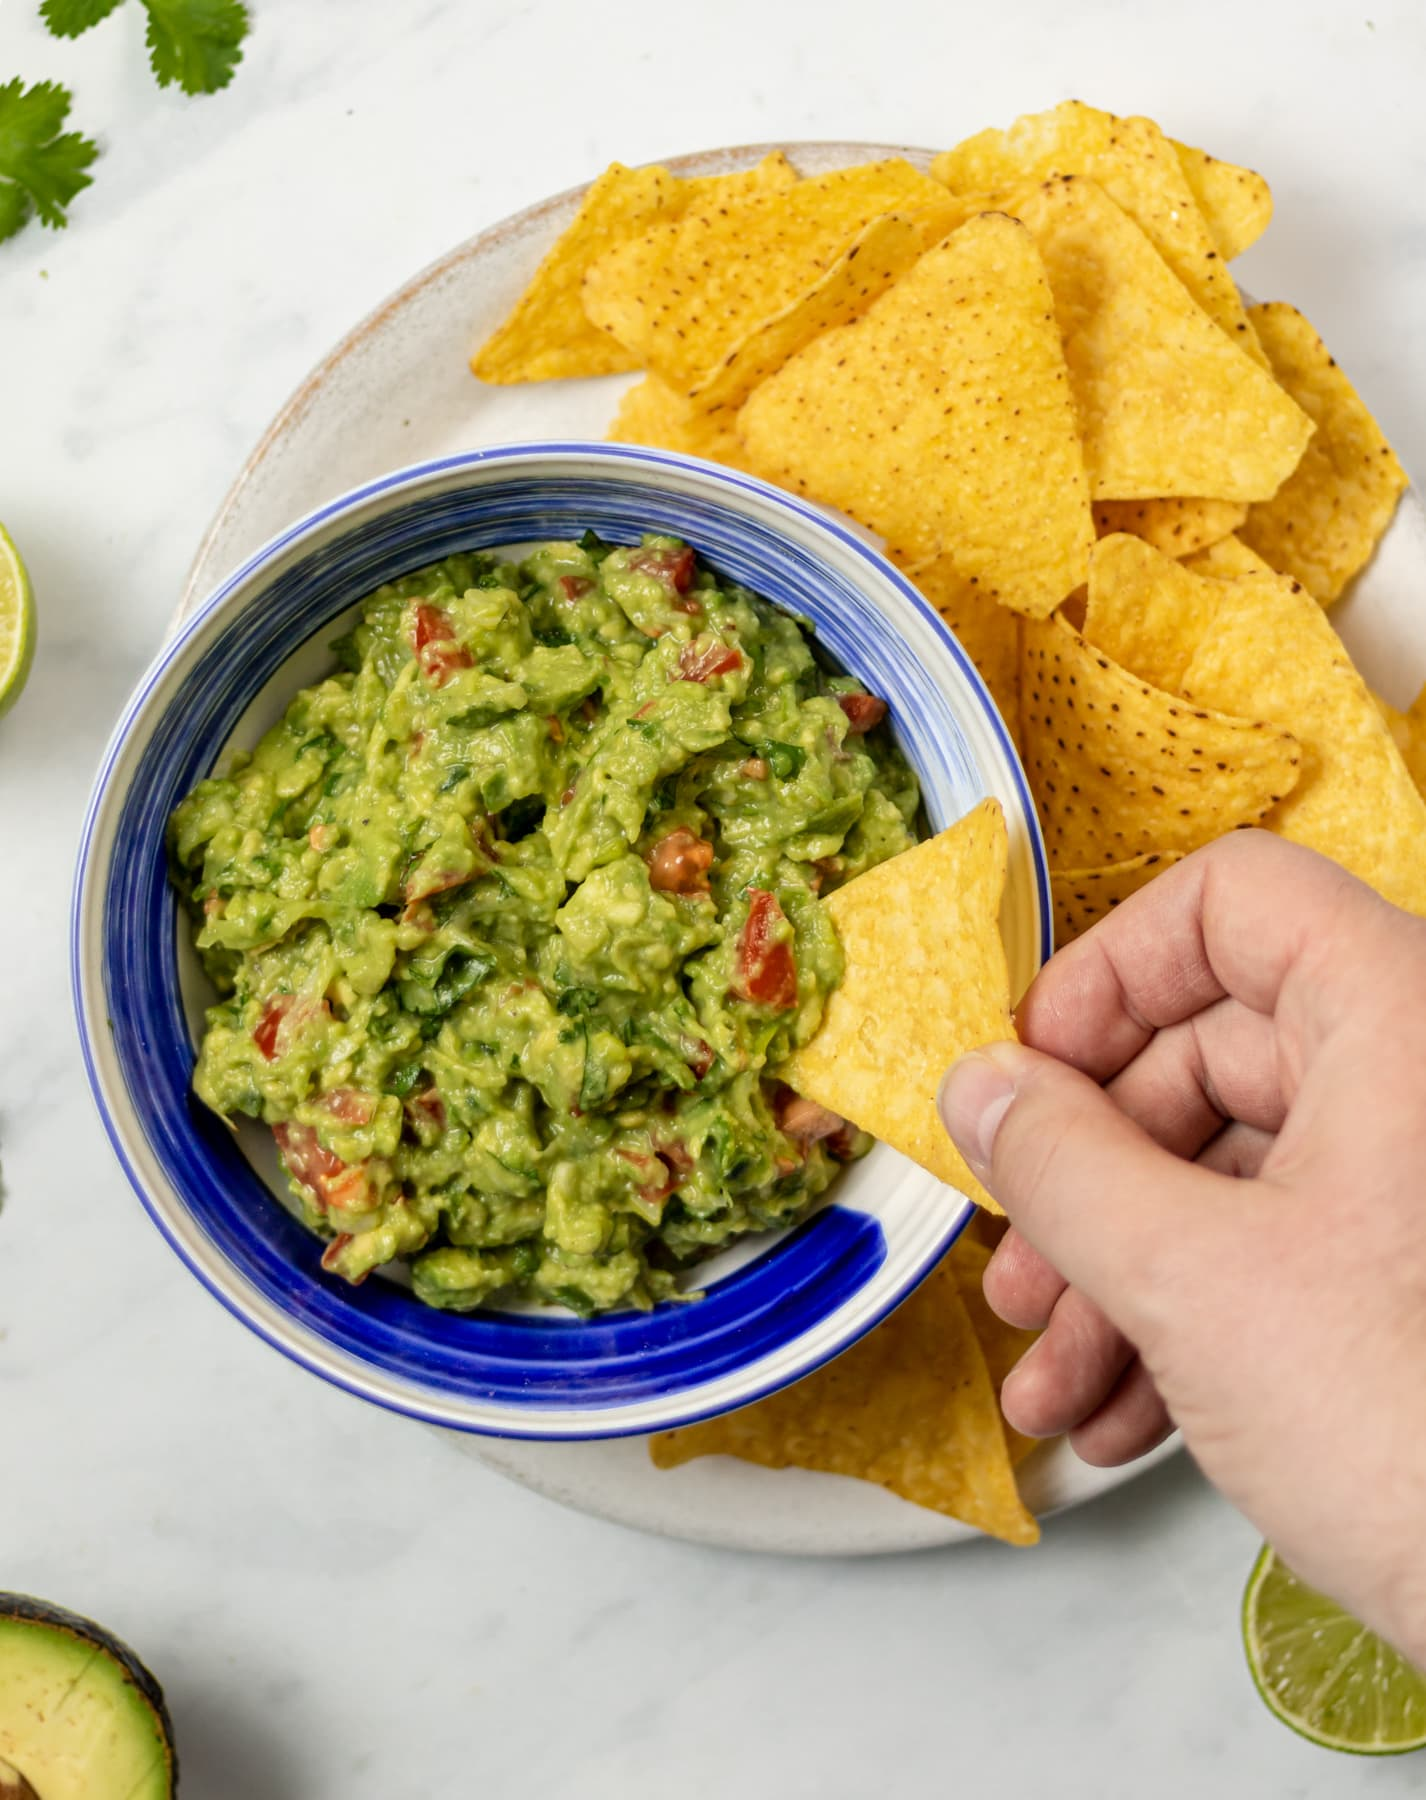 guacamole in a bowl on a plate surrounded with tortilla chips. Hand reaching into bowl with tortilla chip.